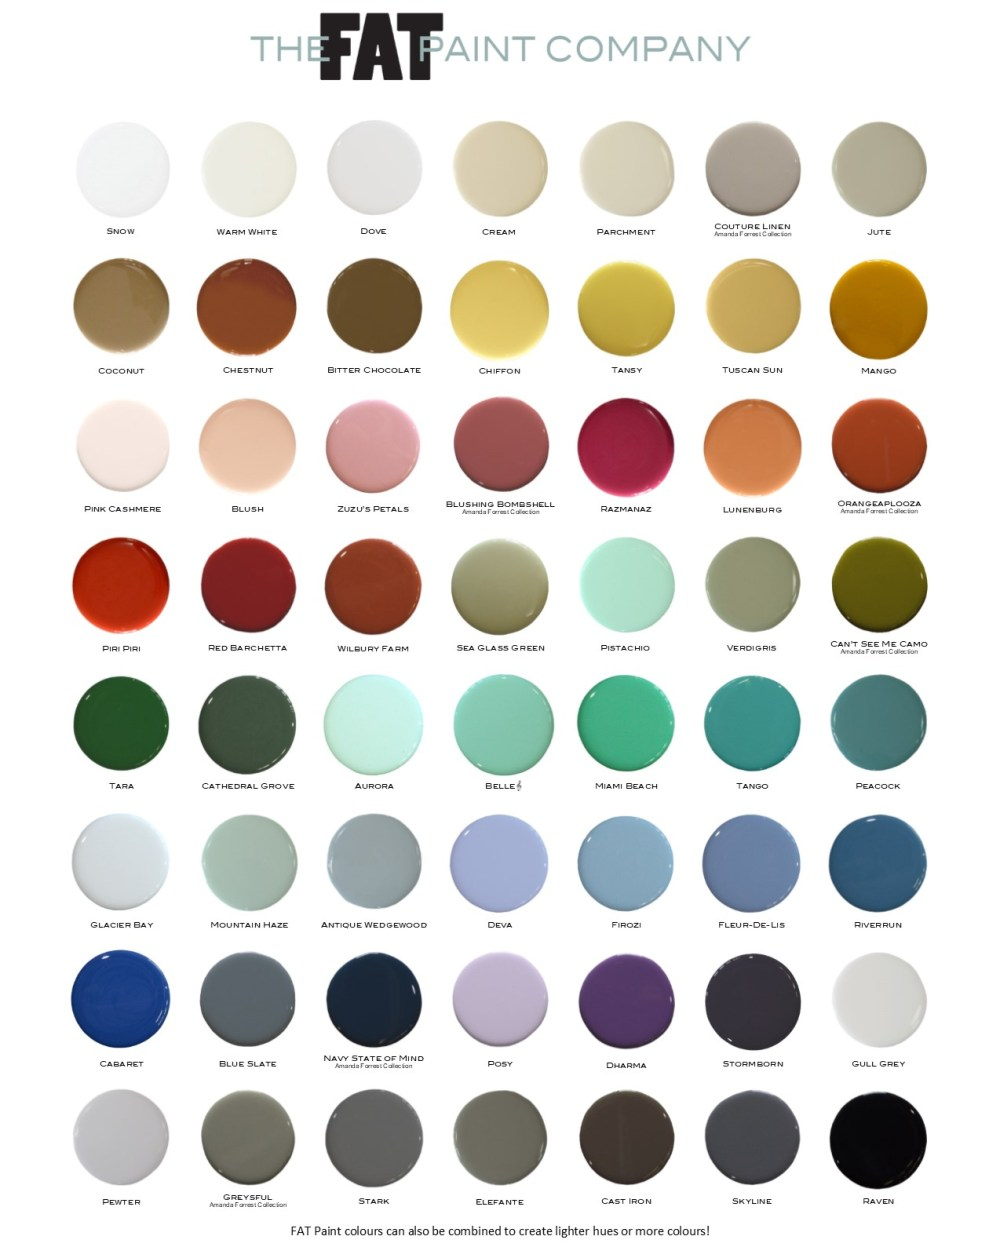 medium resolution of that s why it s vital that the fat palette is current and relevant to today s colour trends